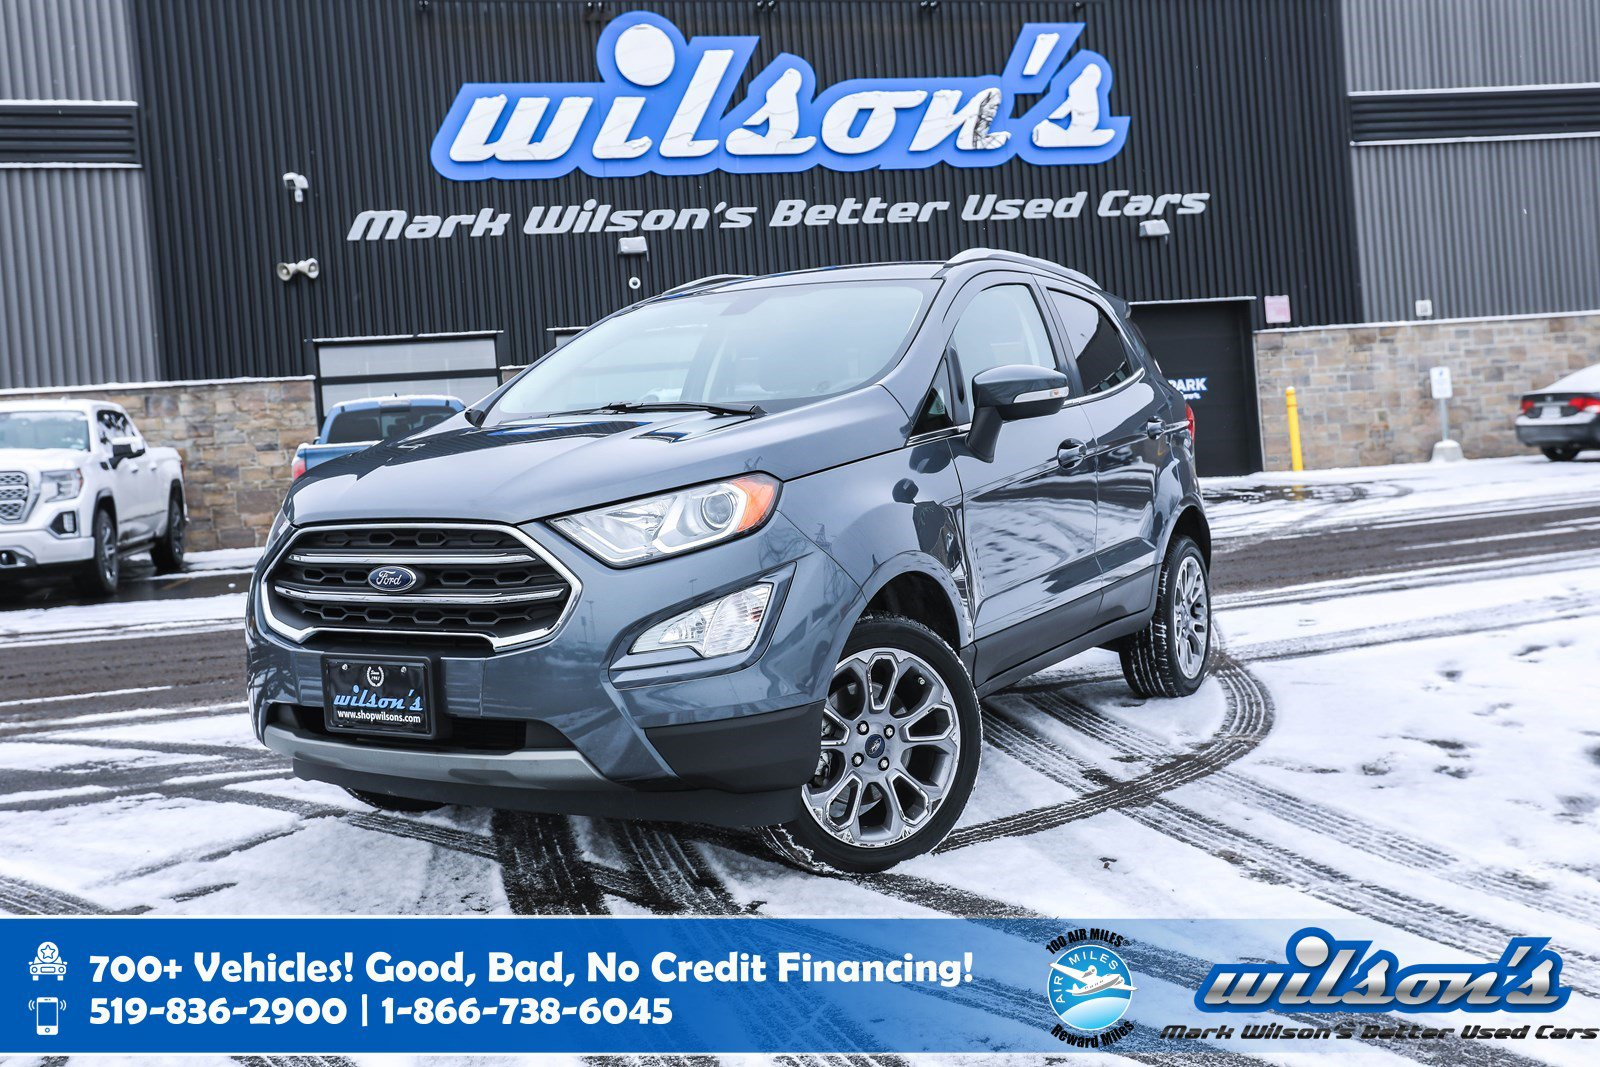 Certified Pre-Owned 2019 Ford EcoSport Titanium AWD Used, Leather, Navigation, Sunroof, Heated Seats + Steering , Bluetooth, Rear Camera